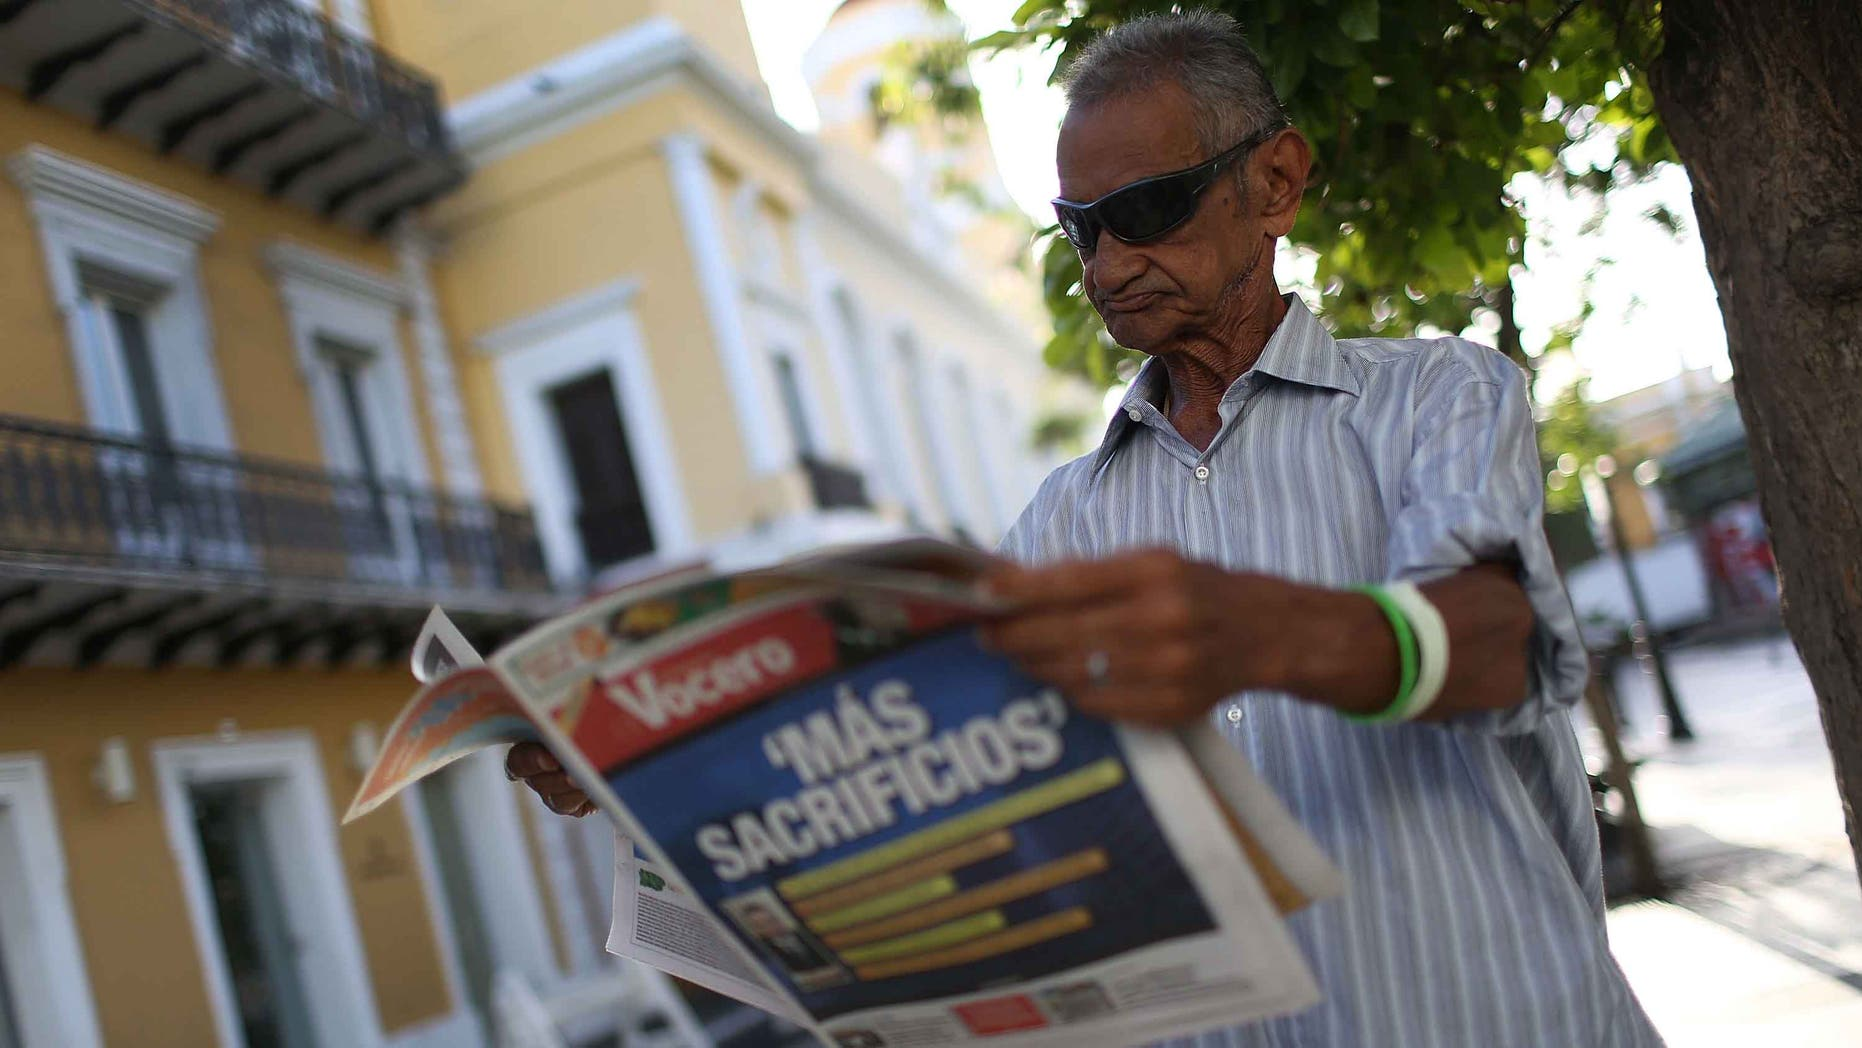 Jose Vasquez reads a newspaper with a Spanish headline that reads 'More sacrifices' in San Juan, Puerto Rico.